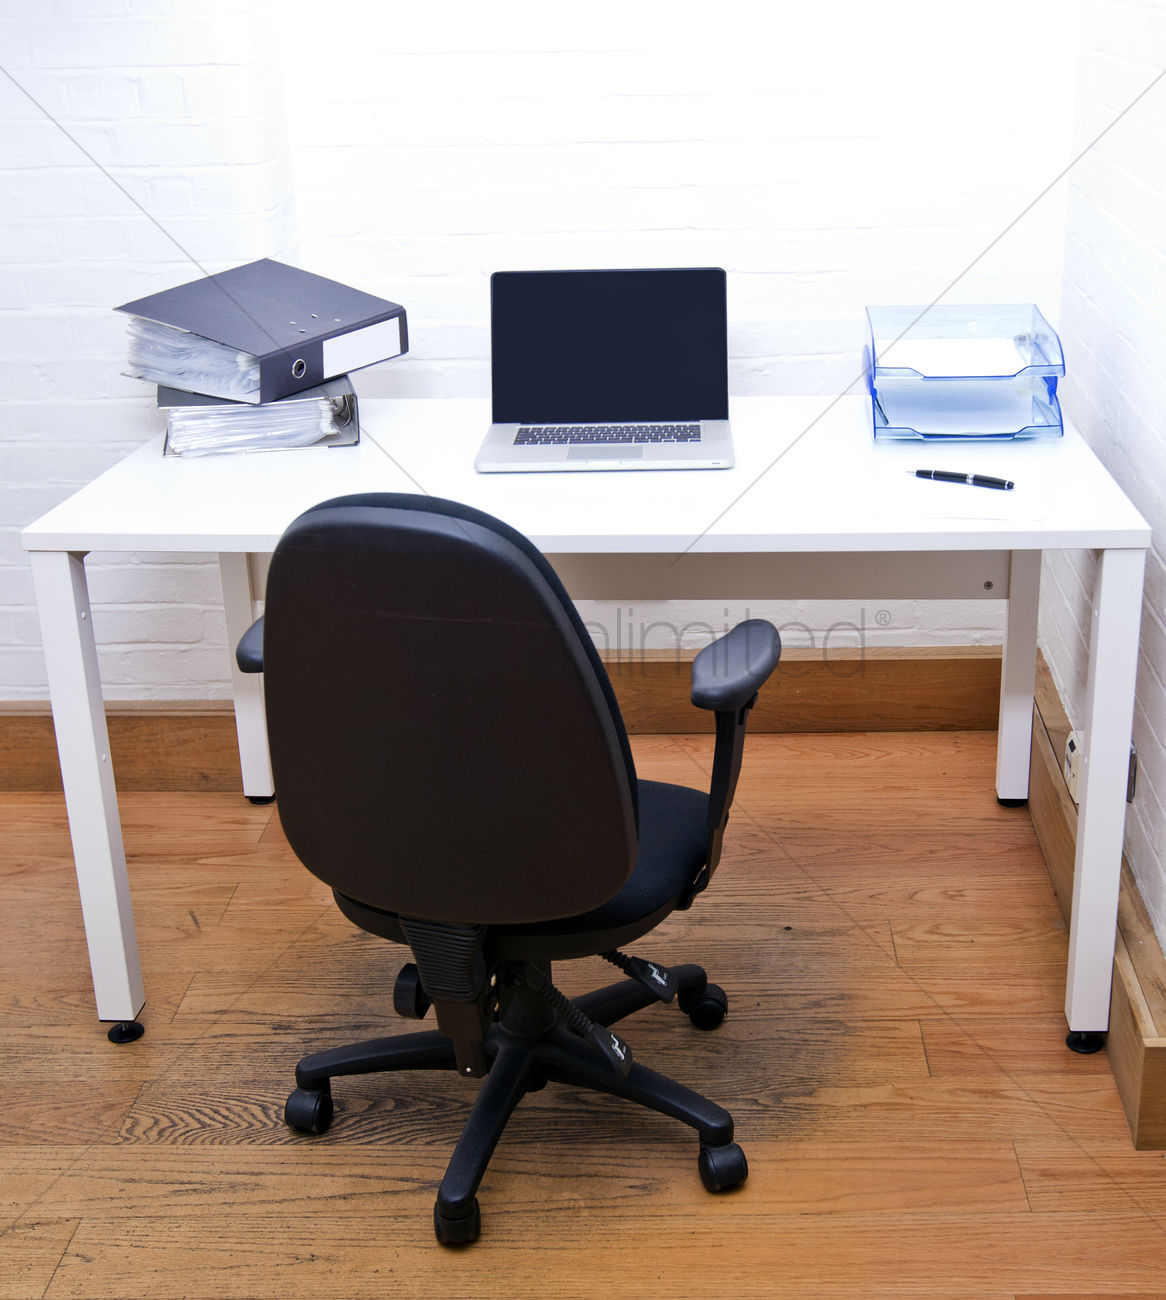 Empty Office Chair With Laptop On Desk Stock Photo 1924500 Stockunlimited